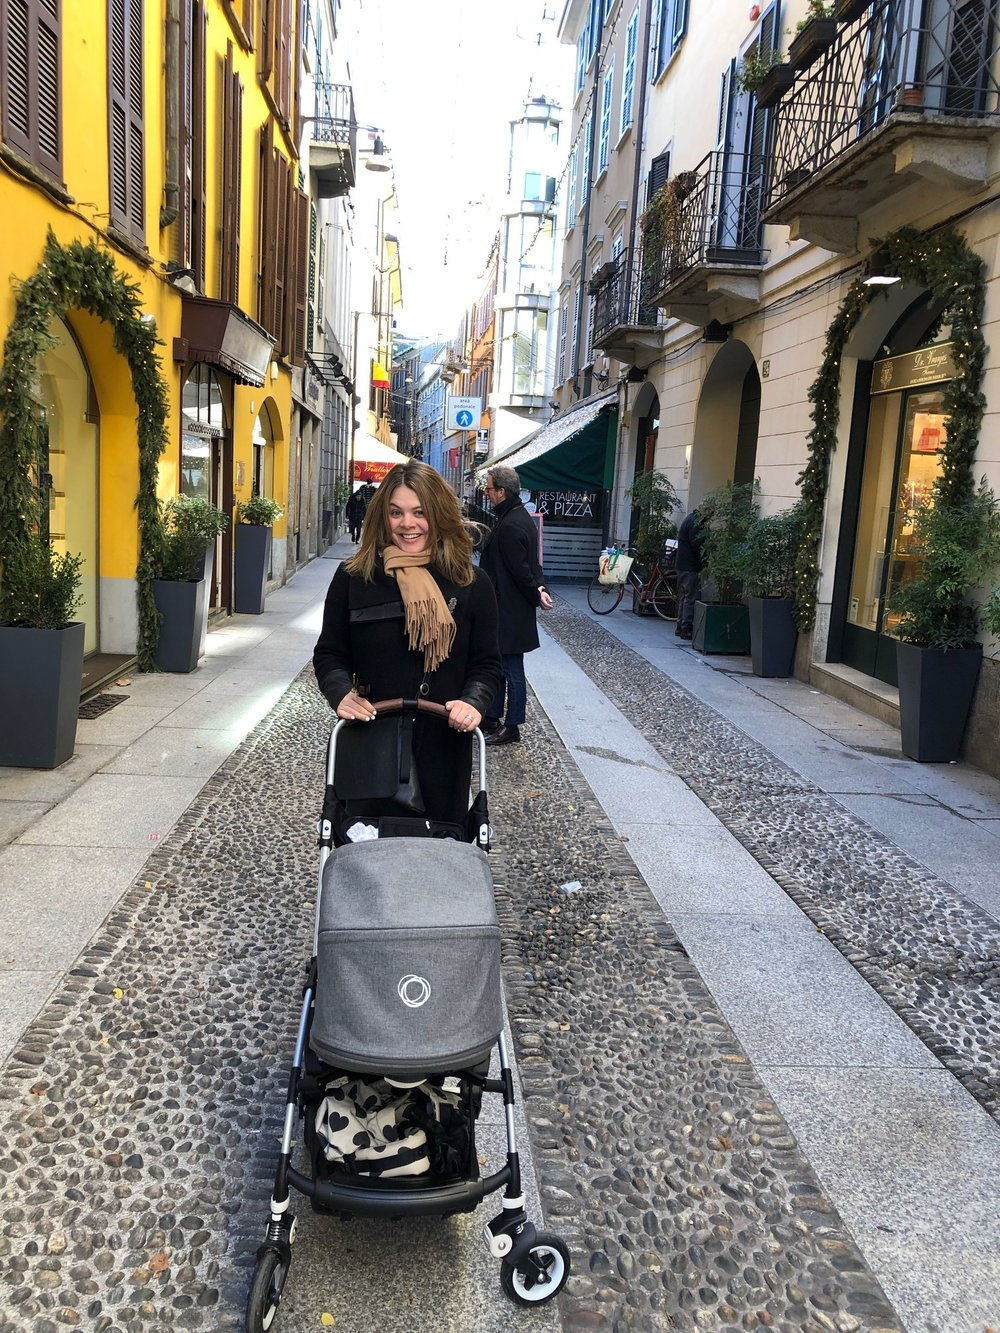 Walking in Brera